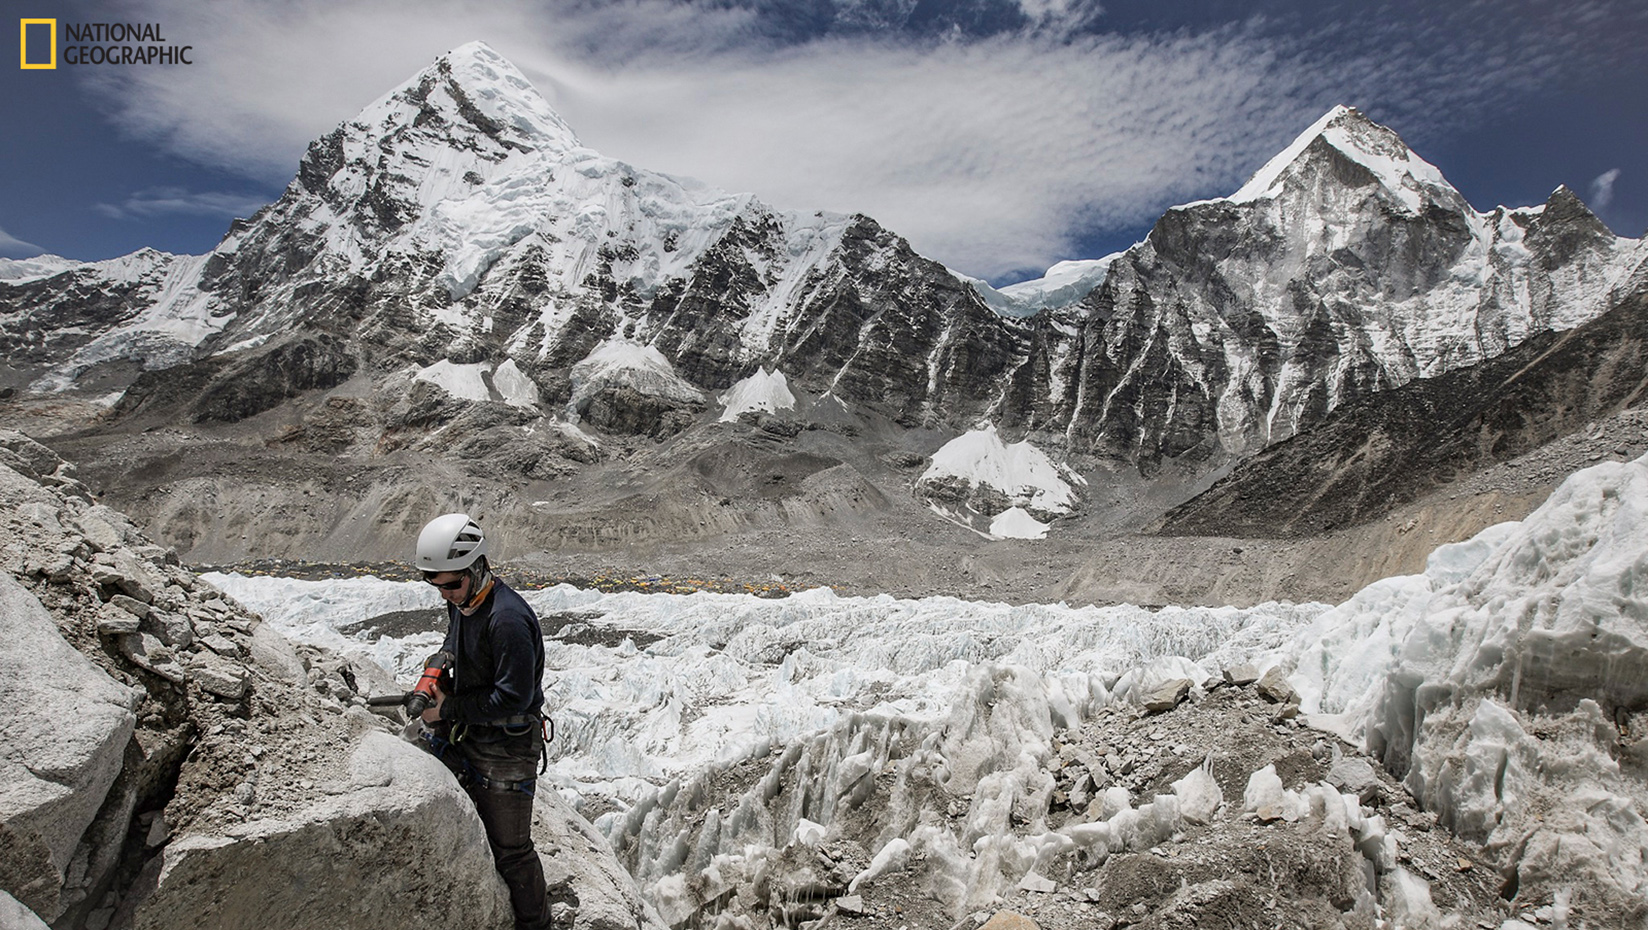 Peter Strand taking a sample from a rock outcrop next to the Khumbu Icefall above Everest Base Camp